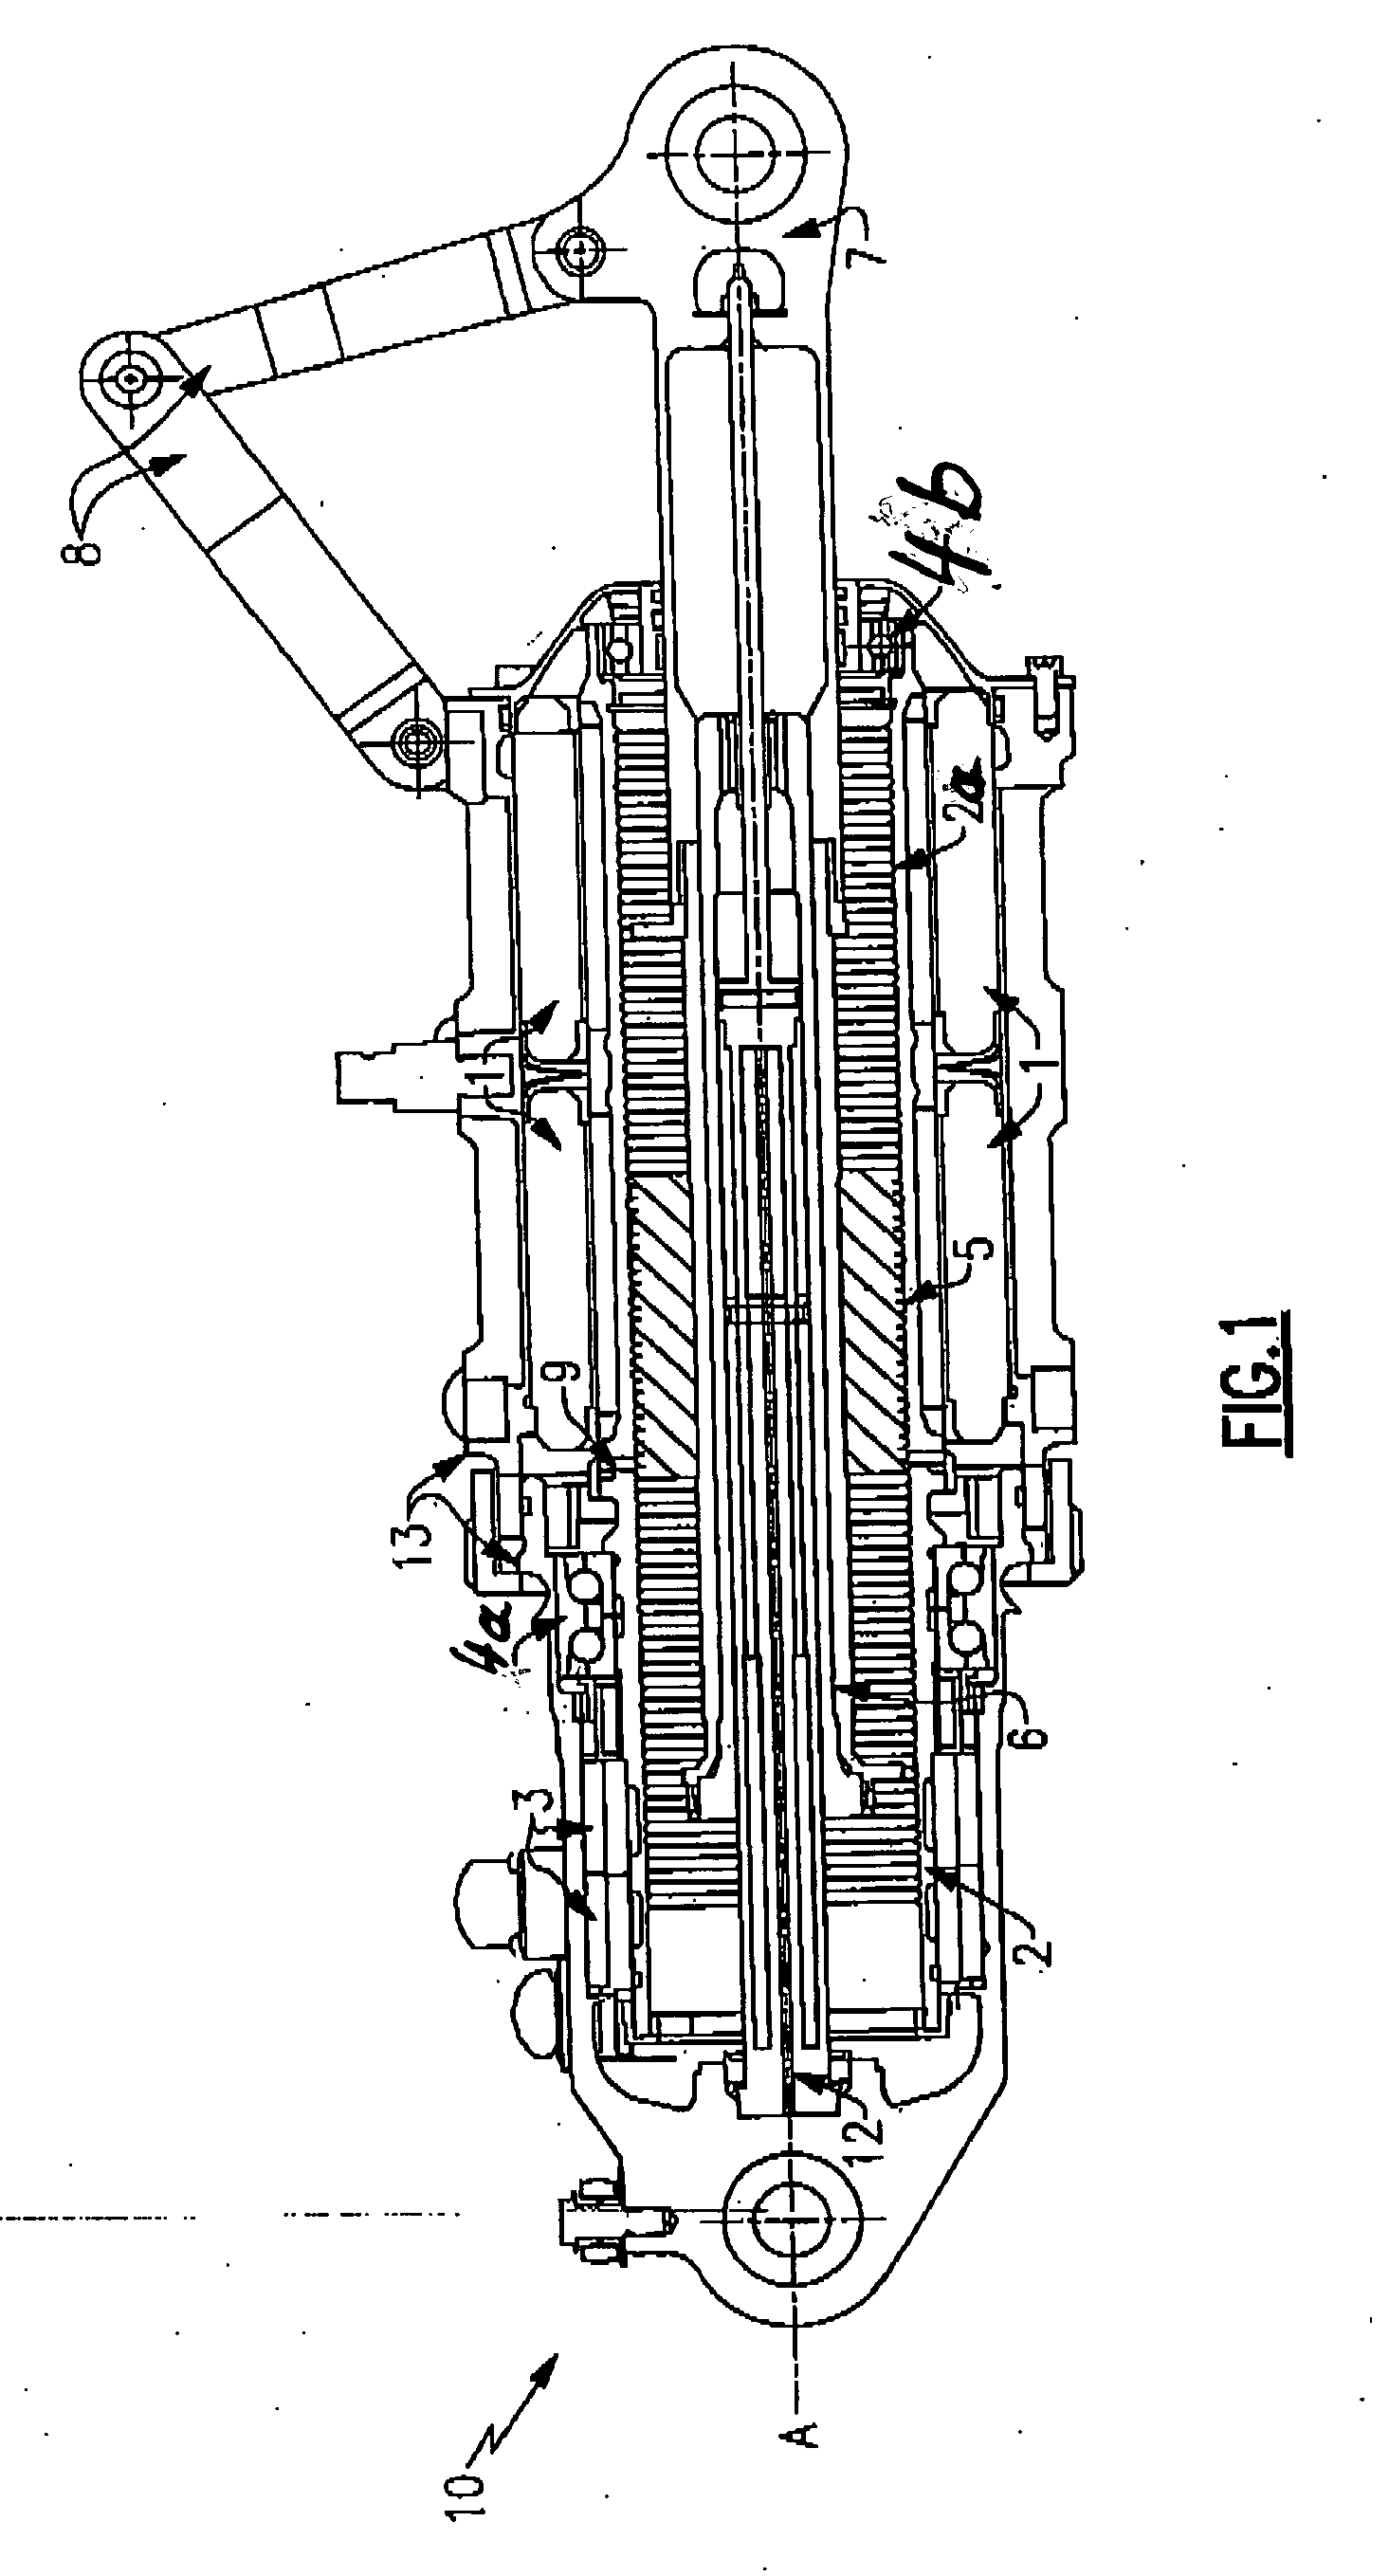 patent ep1731421b1 - electro-mechanical linear actuator